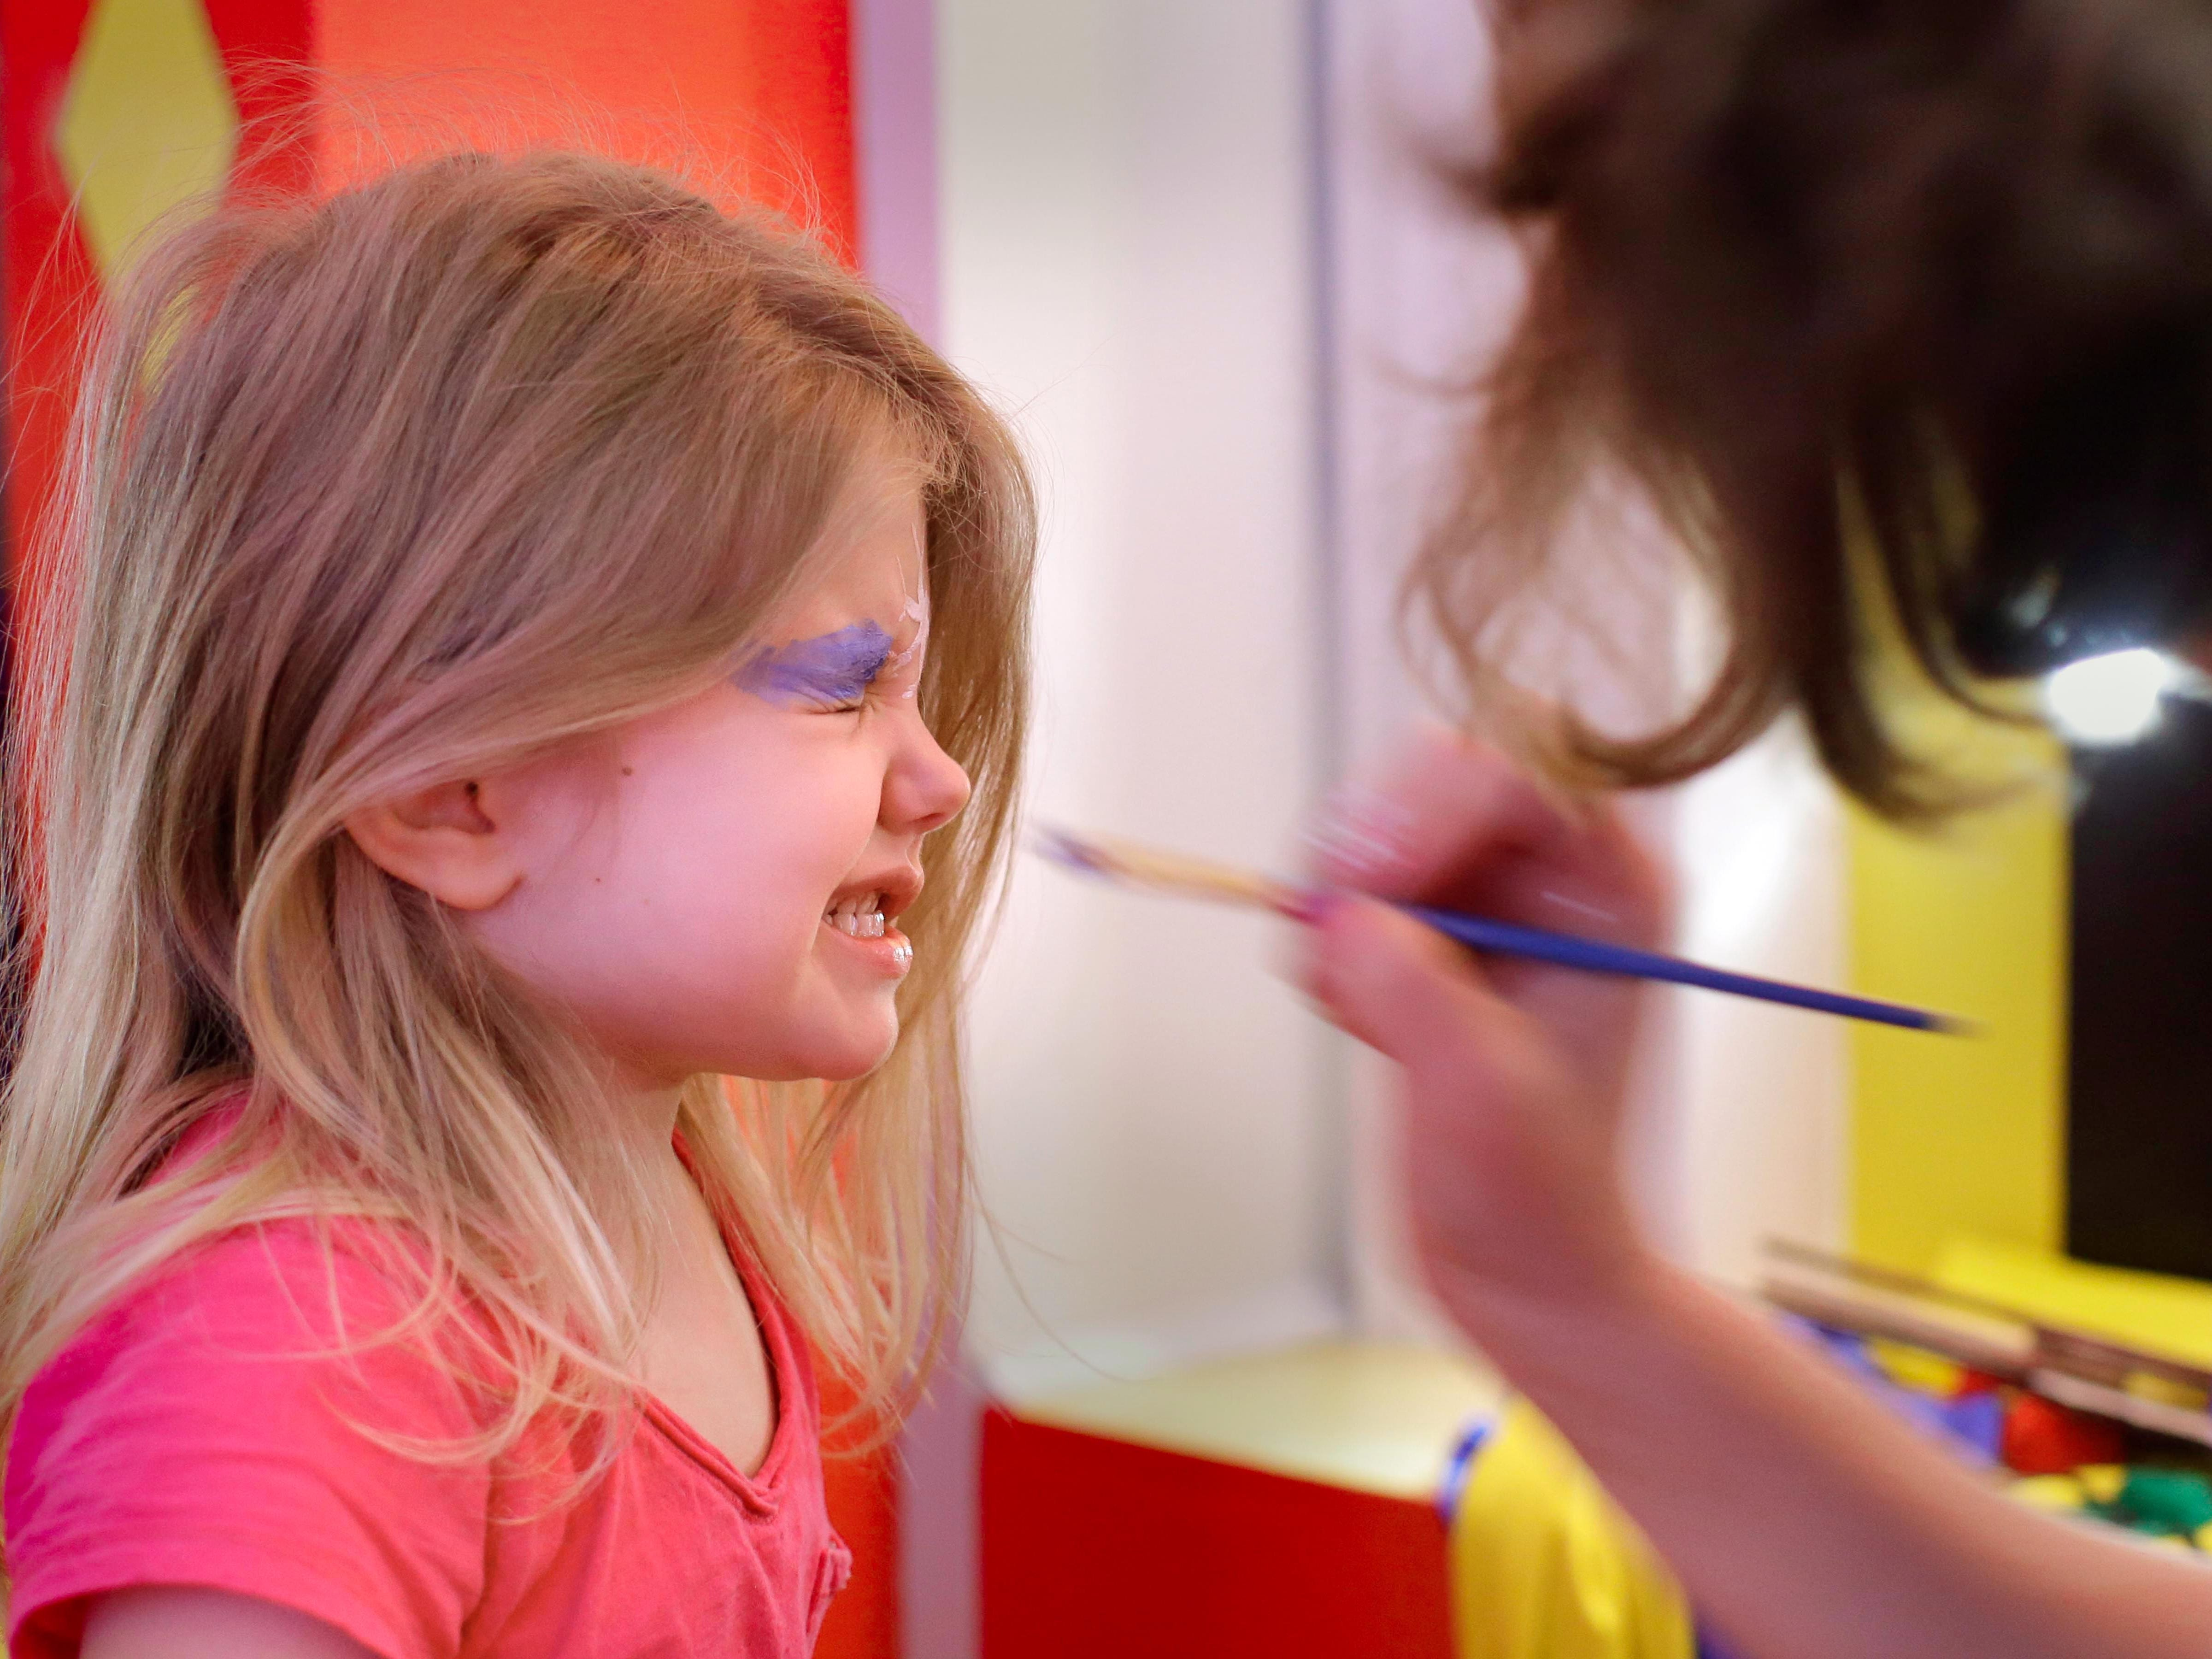 Elizabeth Westphal, 4, of Sheboygan, reacts to being painted during the Above and Beyond Children's Museum's Facepaint Friday, Friday, January 19, 2018 in Sheboygan, Wis.